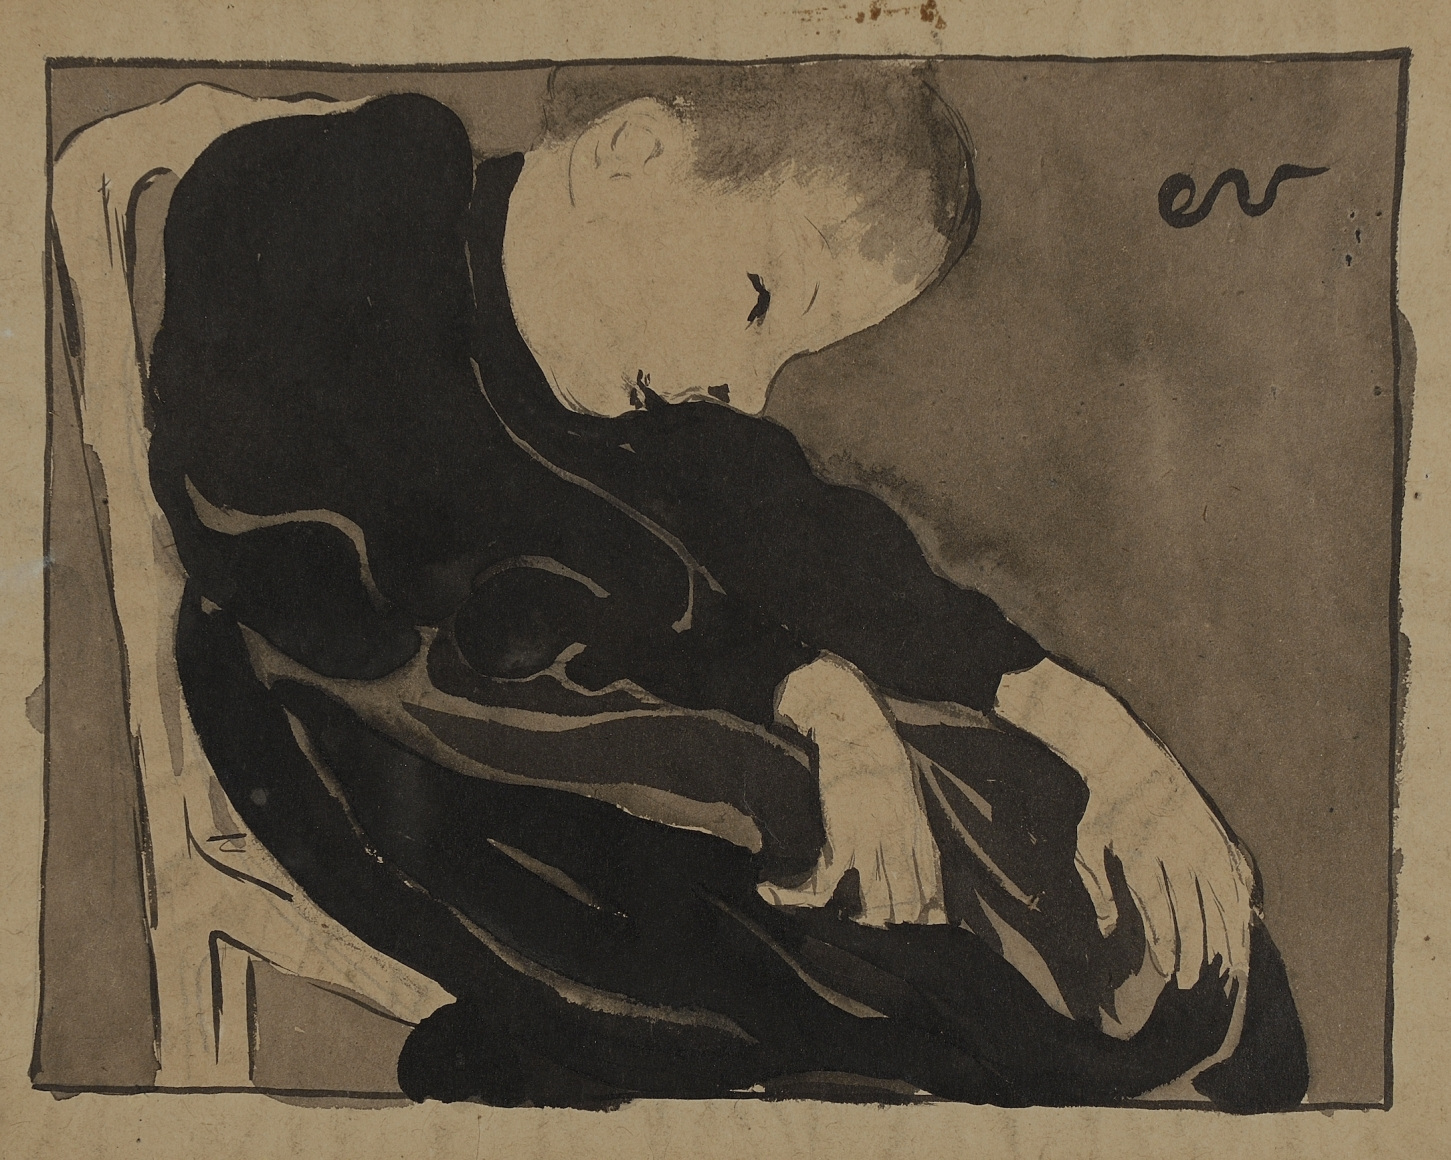 Édouard Vuillard (1868-1940), Marie Vuillard sur sa chaise, penchée (Marie Vuillard in her chair, leaning), 1891-1892, Chinese ink wash on brown paper, 7 1/10 x 9 1/4 in. (18 x 23.5 cm), Initialed upper right: ev